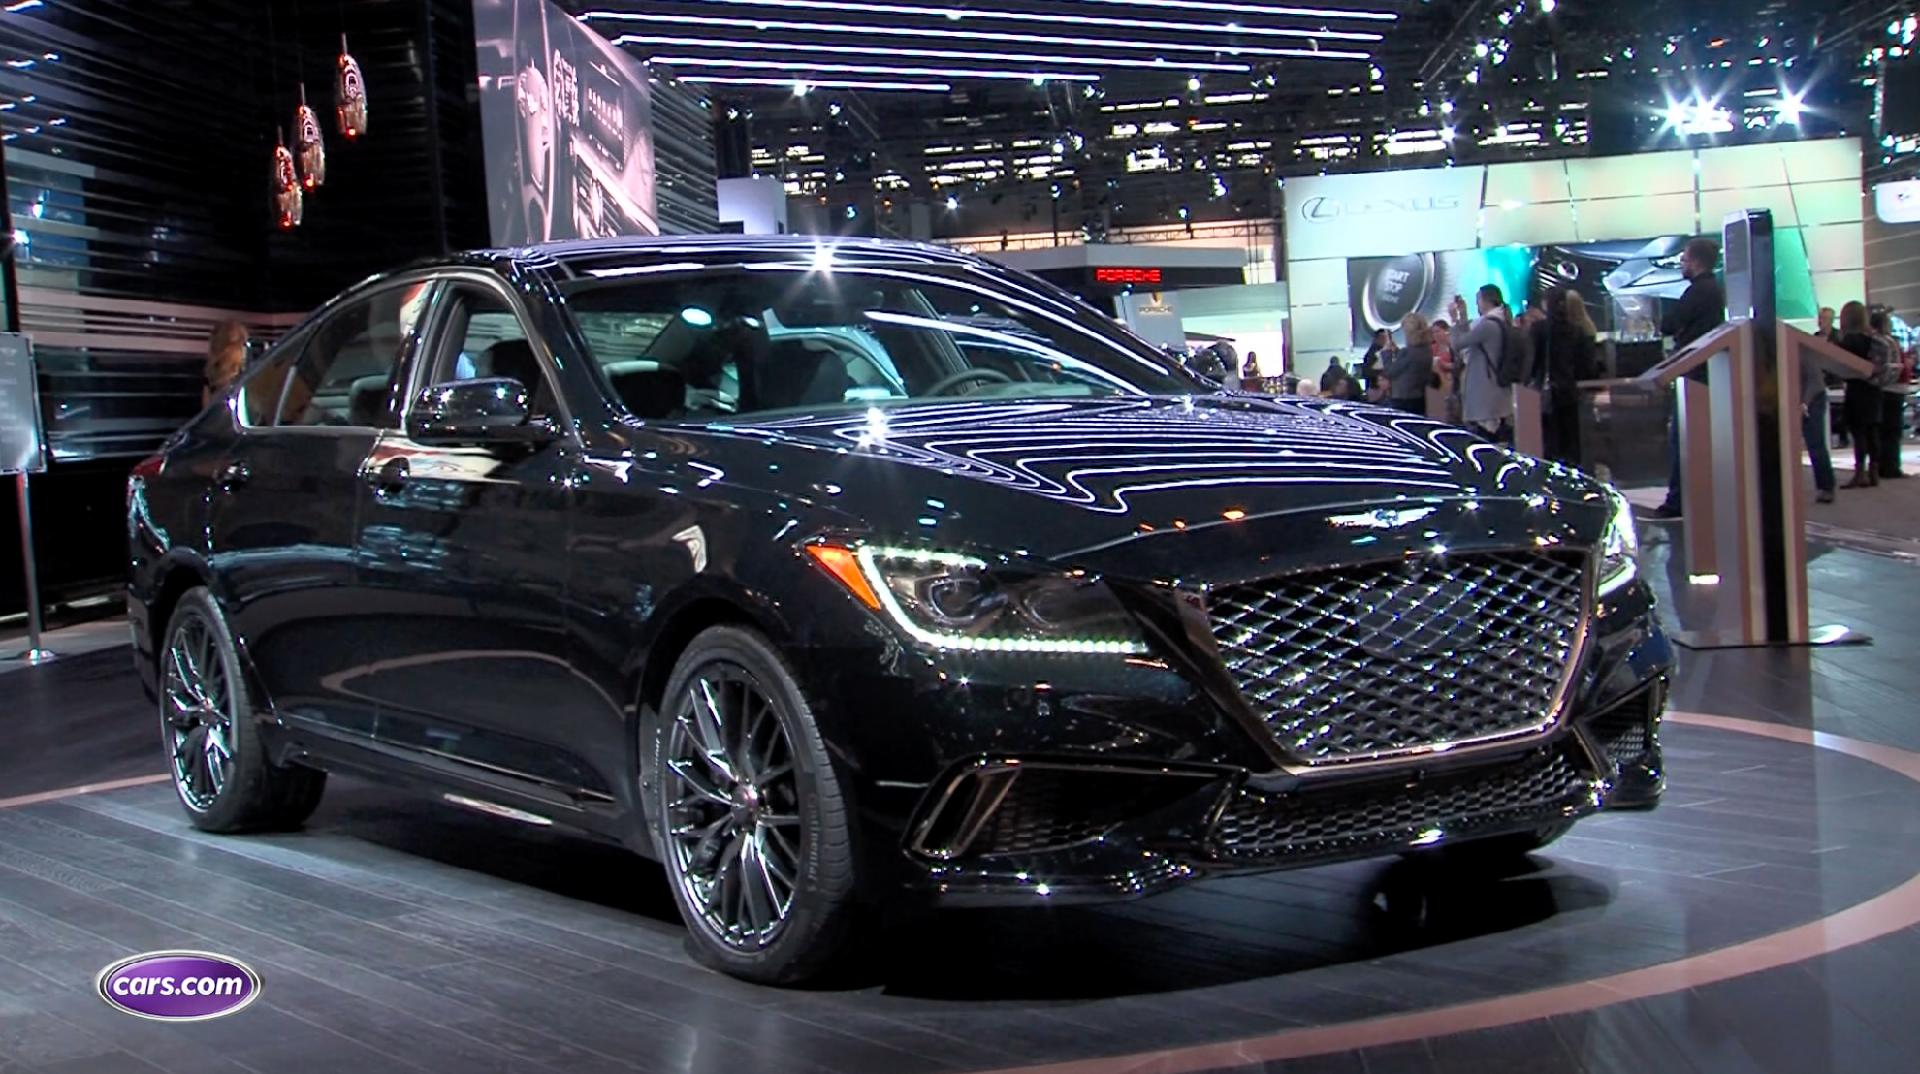 Video: 2018 Genesis G80 Sport: First Impressions